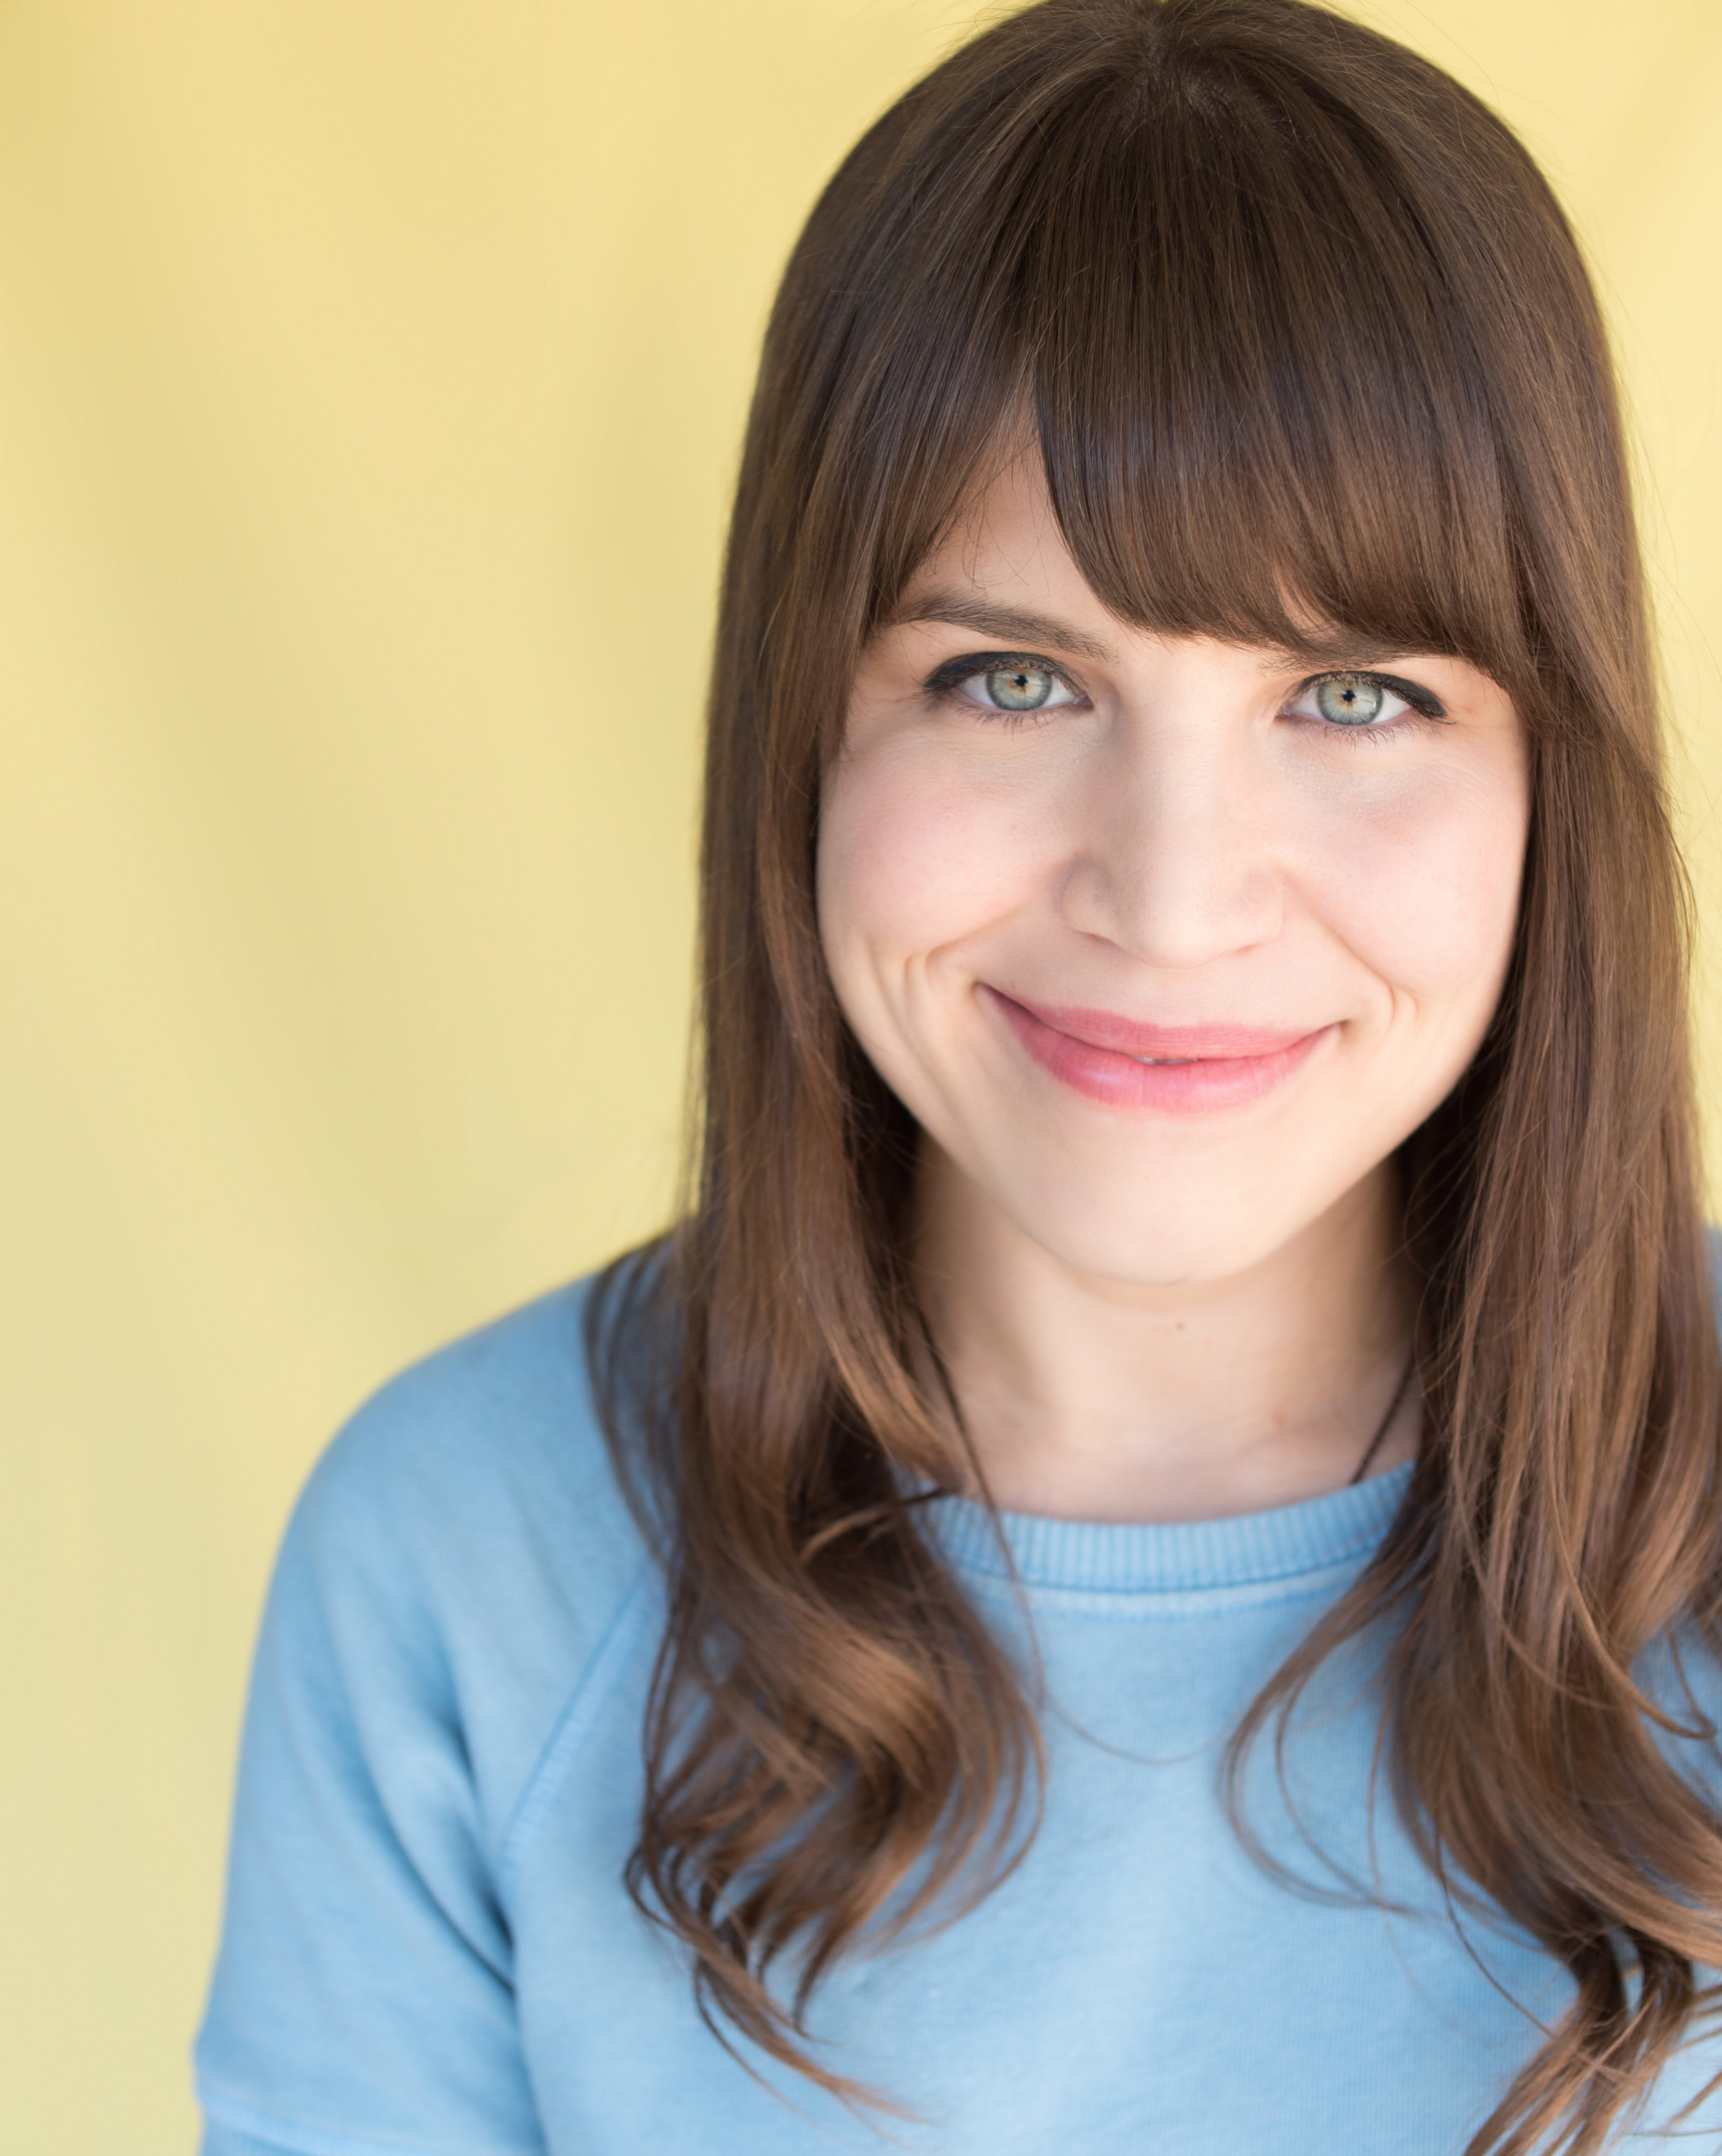 Marissa Strickland - Marissa Strickland is a writer/actress from Los Angeles, CA. She does weekly shows at the Upright Citizens Brigade Theatre and performed in the 2017 ABC Discovers: Talent Showcase. Her screen credits include: ABC's Black-ish, ABC's Happy Endings, Adult Swim's Newsreaders, Hulu's Betch, Go90's Drive Share and a bunch of commercials.Also, she has a weird dad who inspired this series.